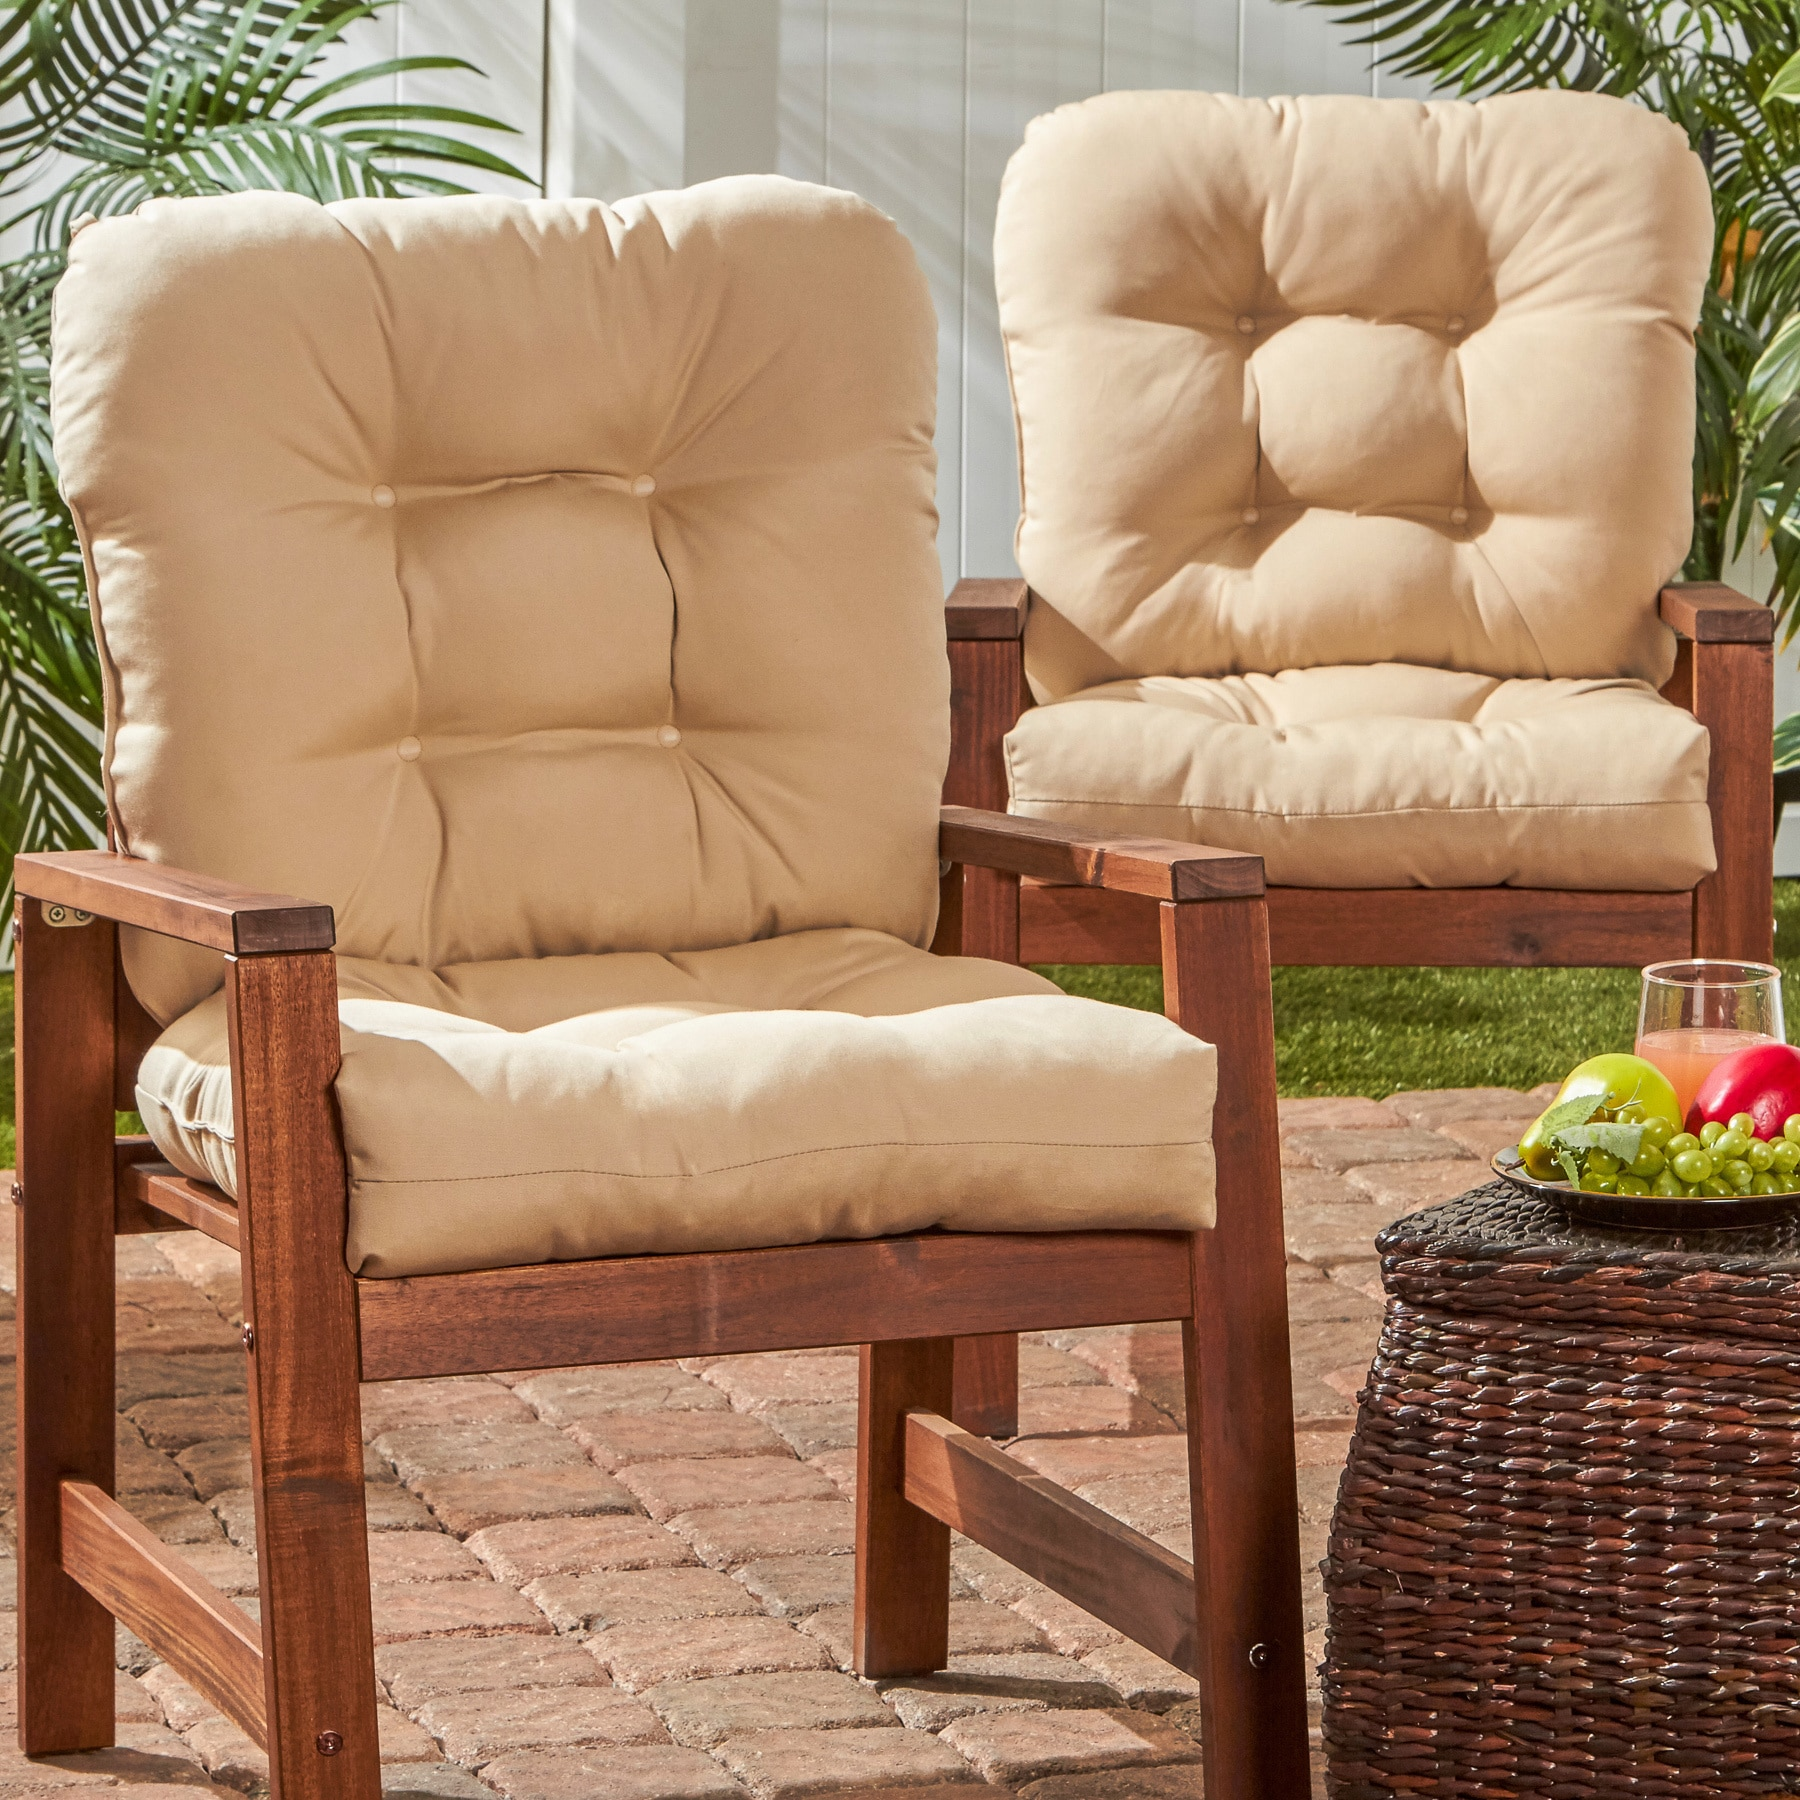 Outdoor Seat Back Chair Cushions Set of 2 Free Shipping Today